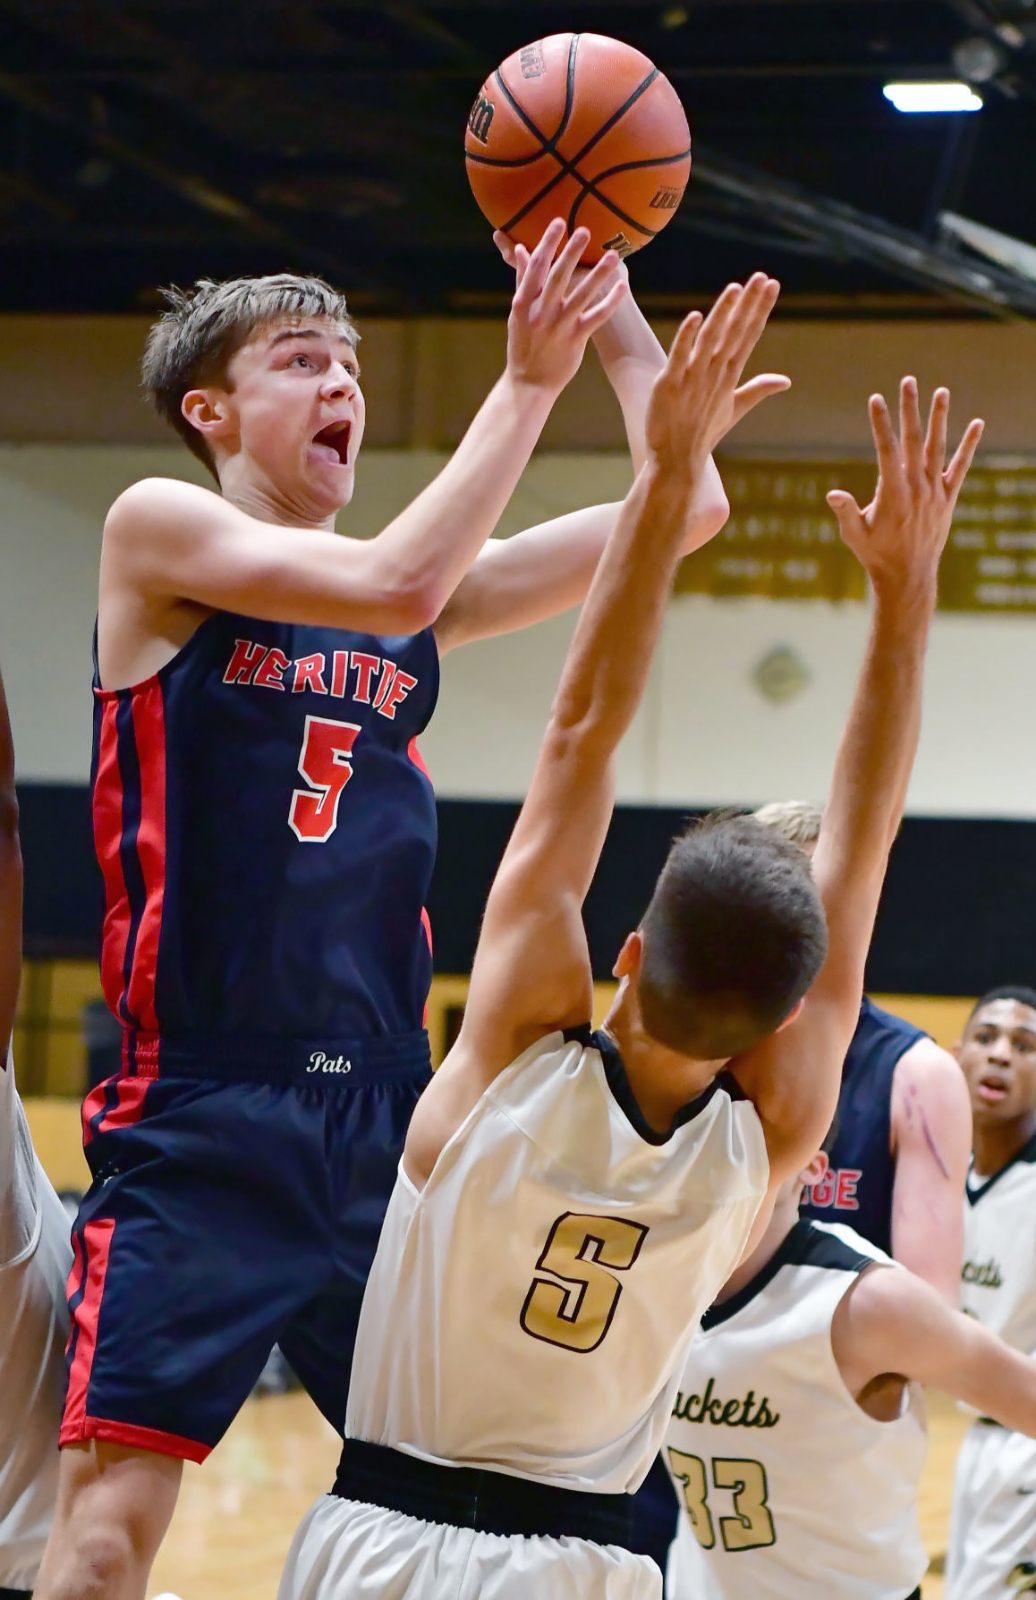 MSP: The Connection names its 2018-19 All Robertson County Boys Basketball team